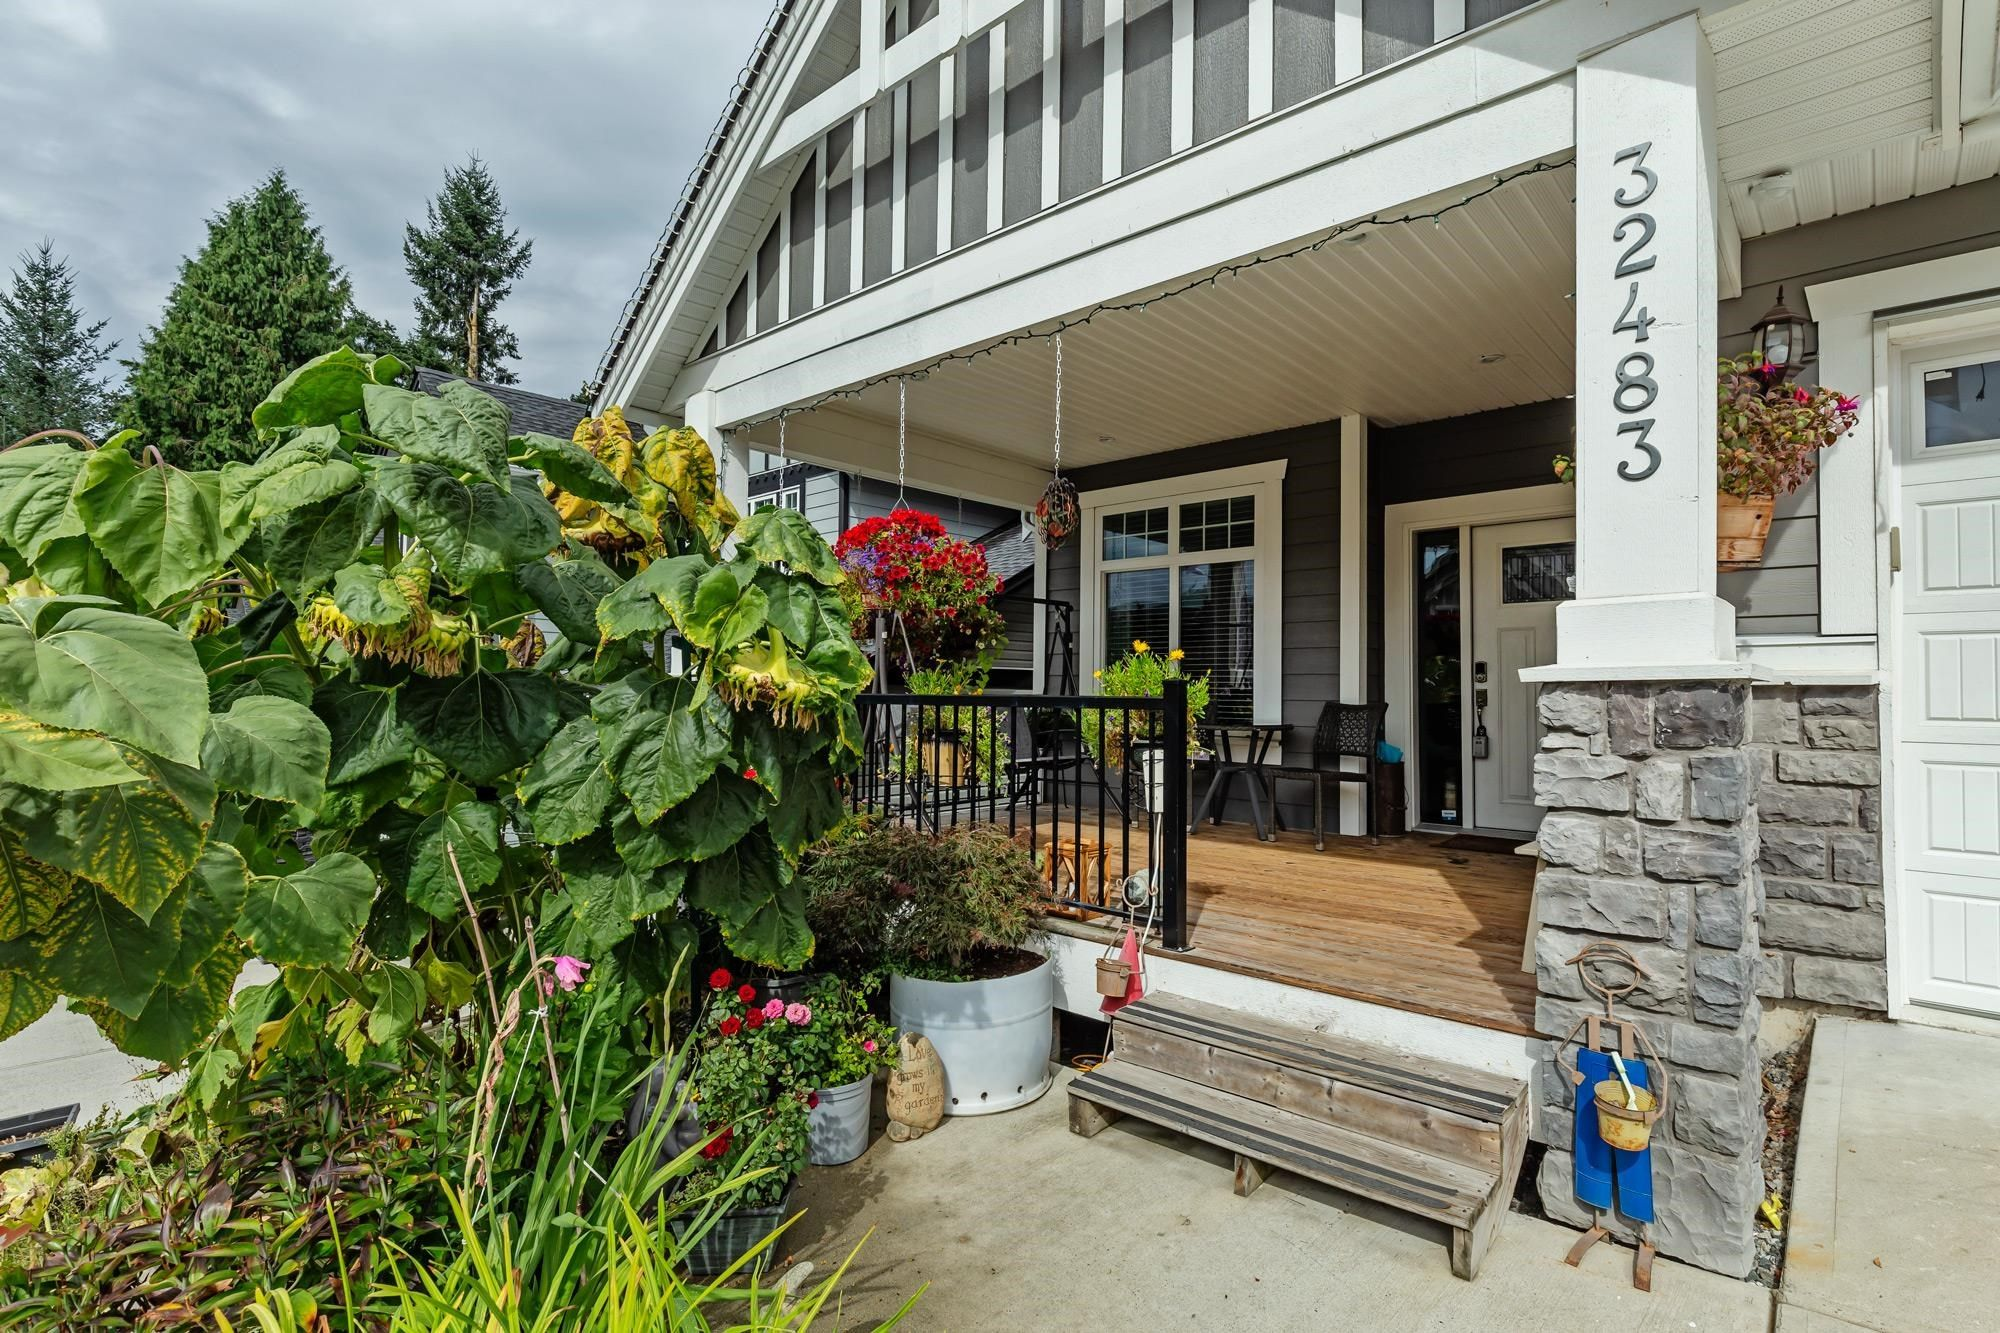 Main Photo: 32483 FLEMING Avenue in Mission: Mission BC House for sale : MLS®# R2616282